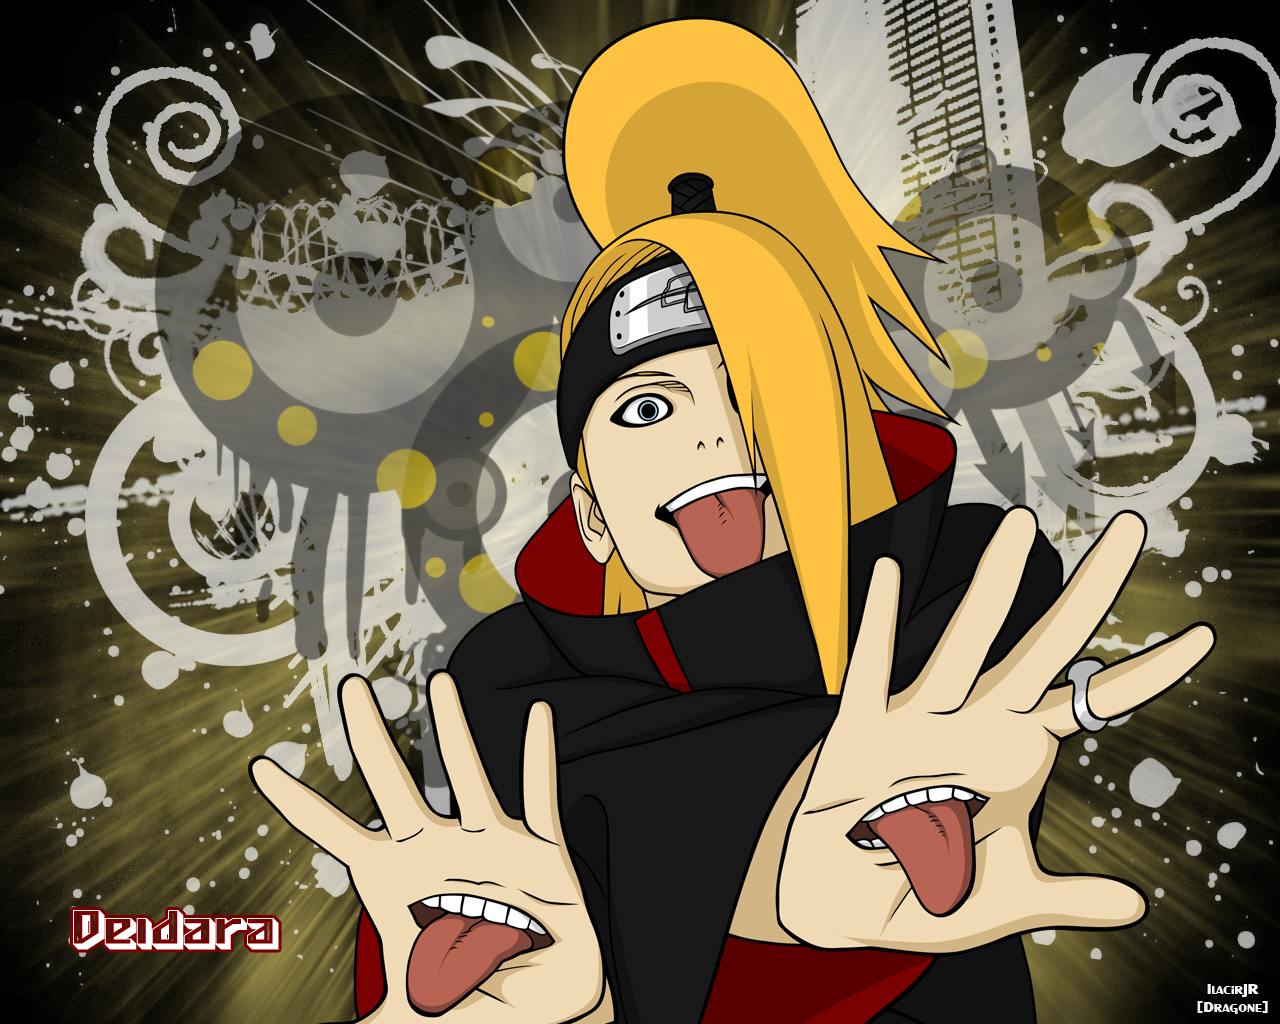 deidara wallpaper by ilacirjr -#main